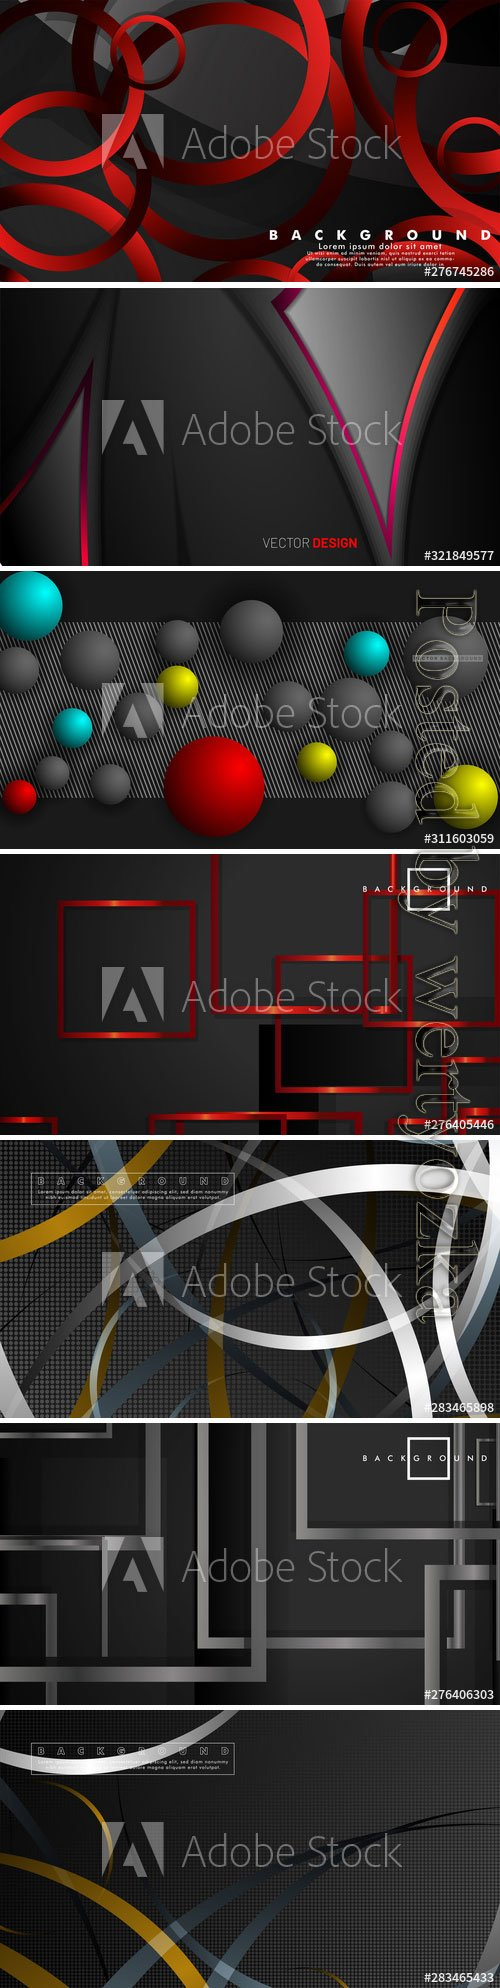 Dark abstract backgrounds with lines and balls